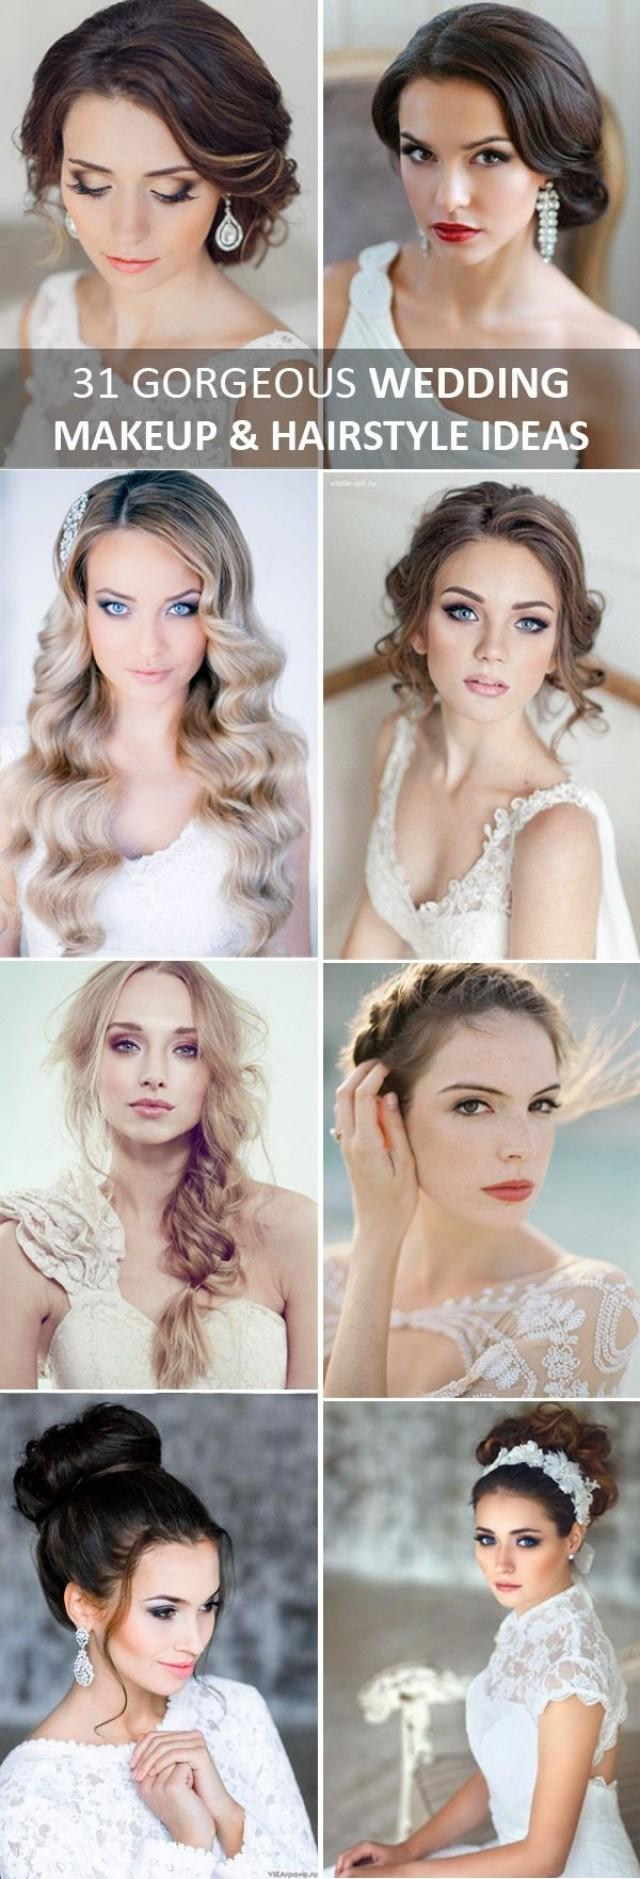 wedding photo - 31 Gorgeous Wedding Makeup & Hairstyle Ideas For Every Bride